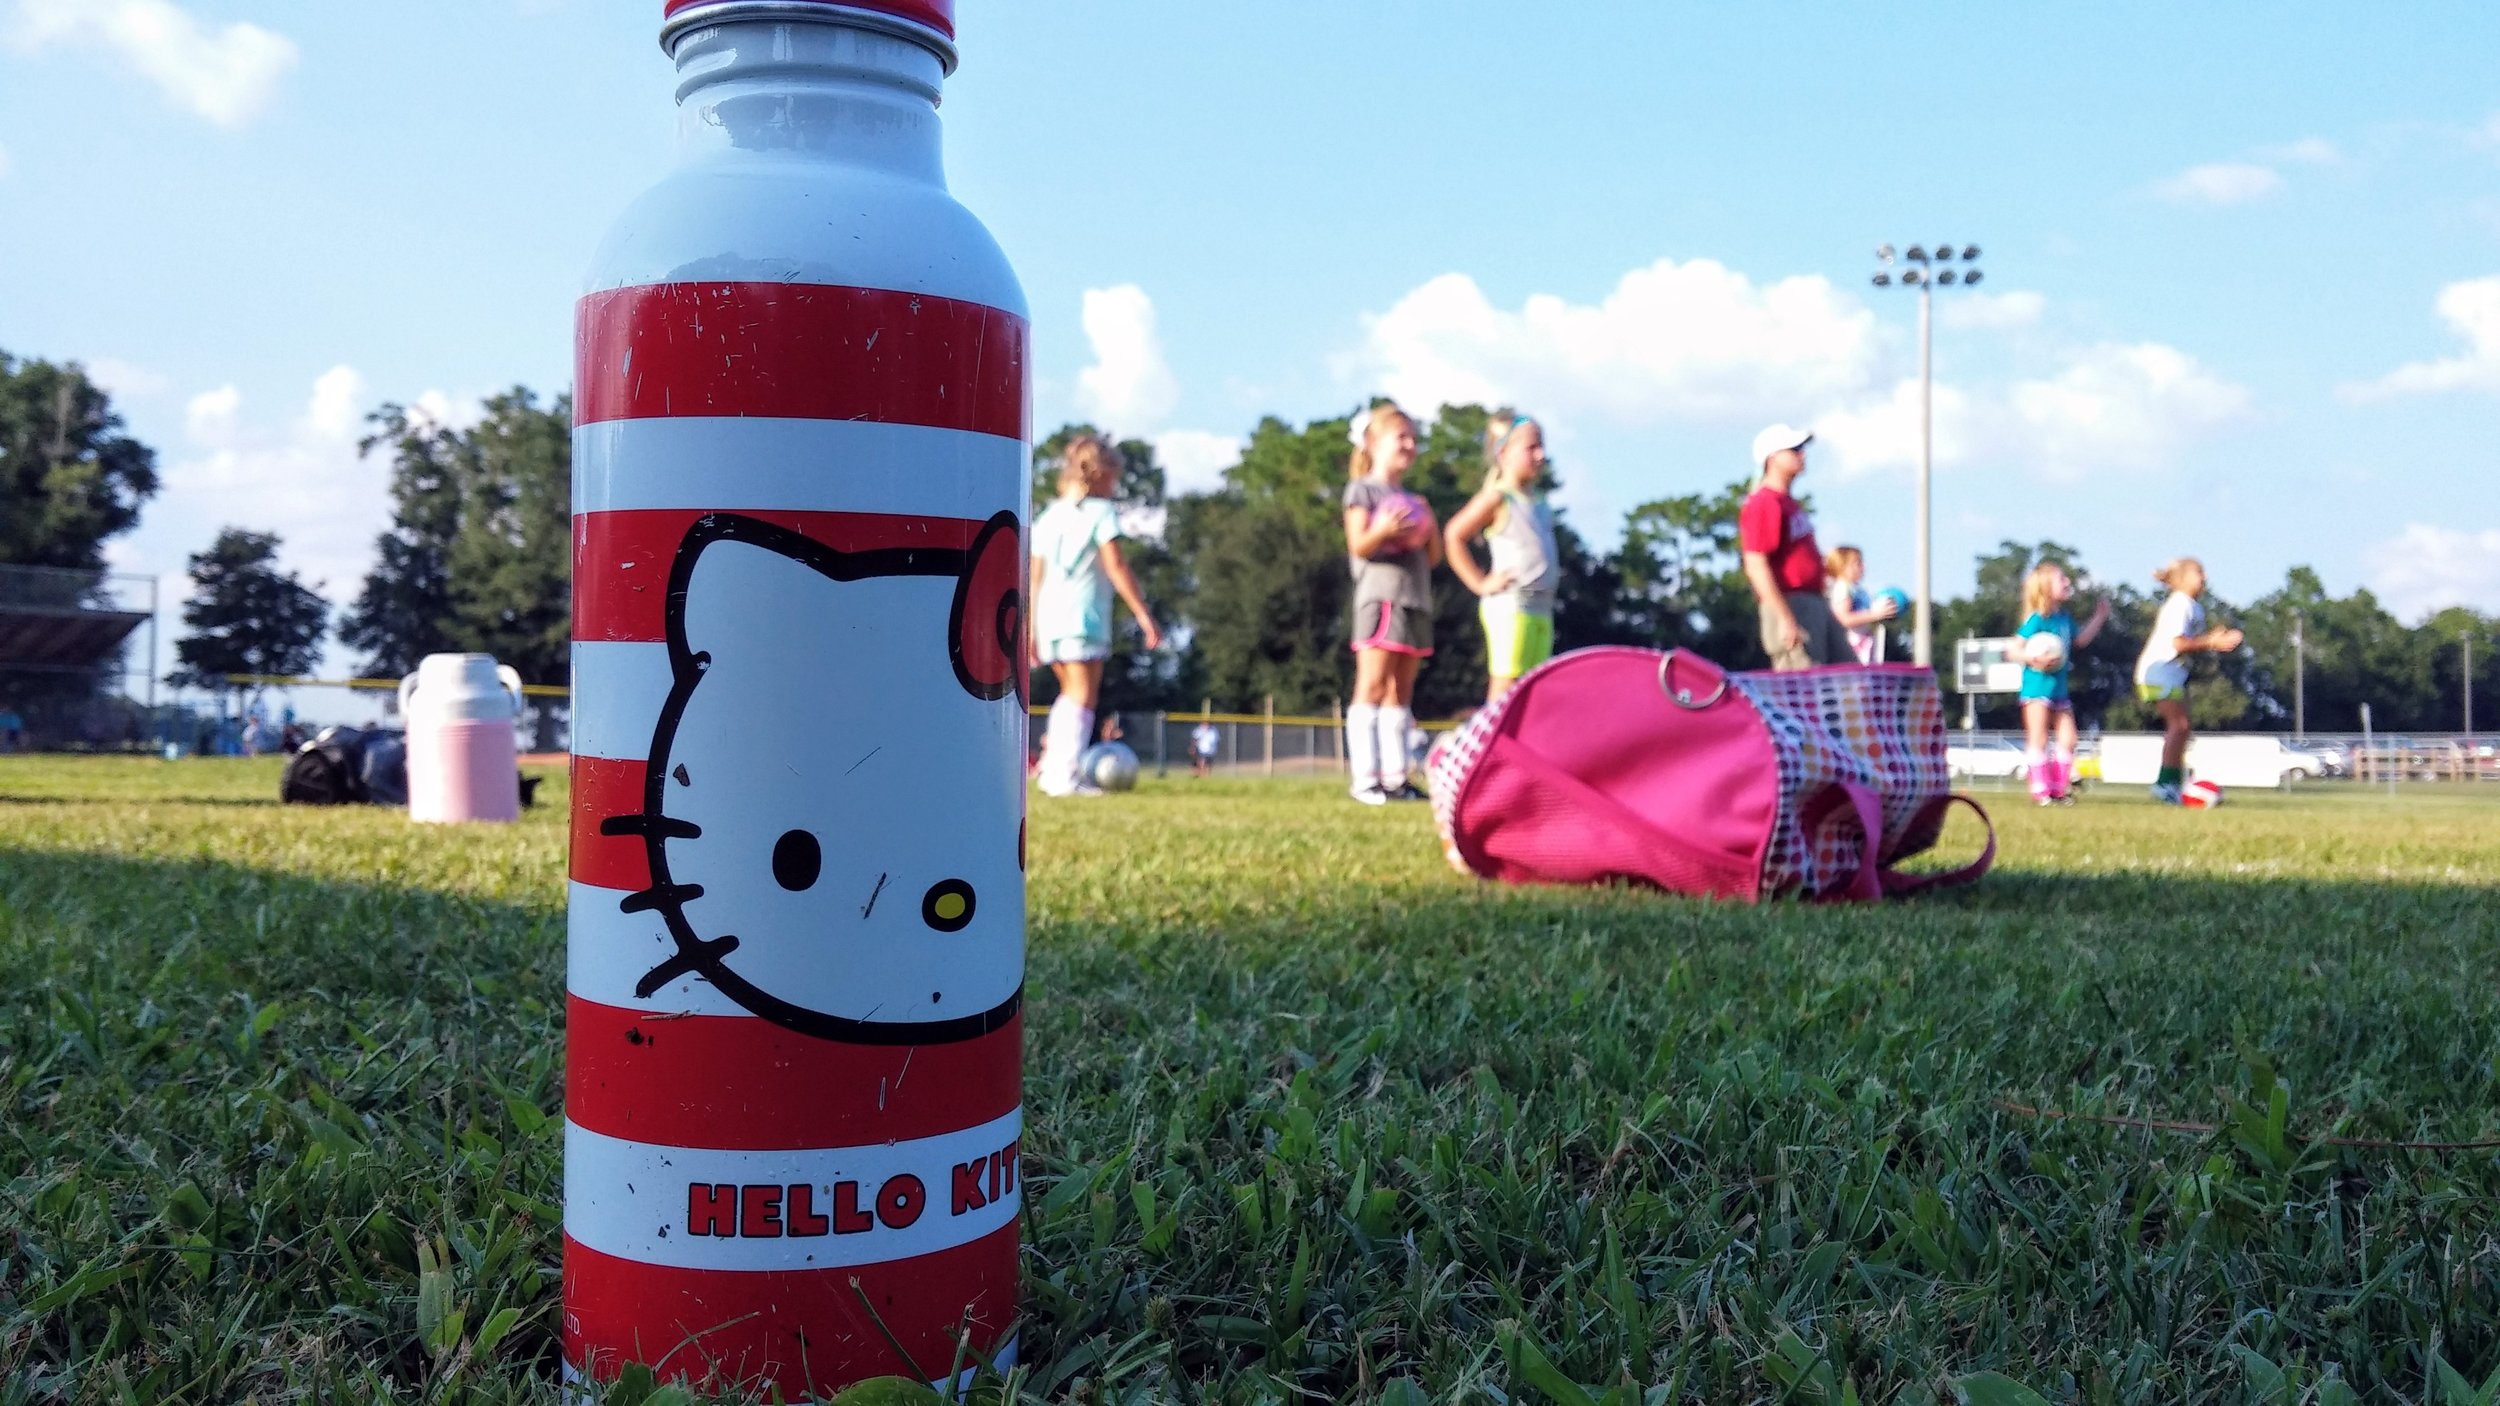 Water bottles are mandatory at soccer practice and games. It's hot out, and you can never hydrate too much. (Hello Kitty is definitely optional, however.)